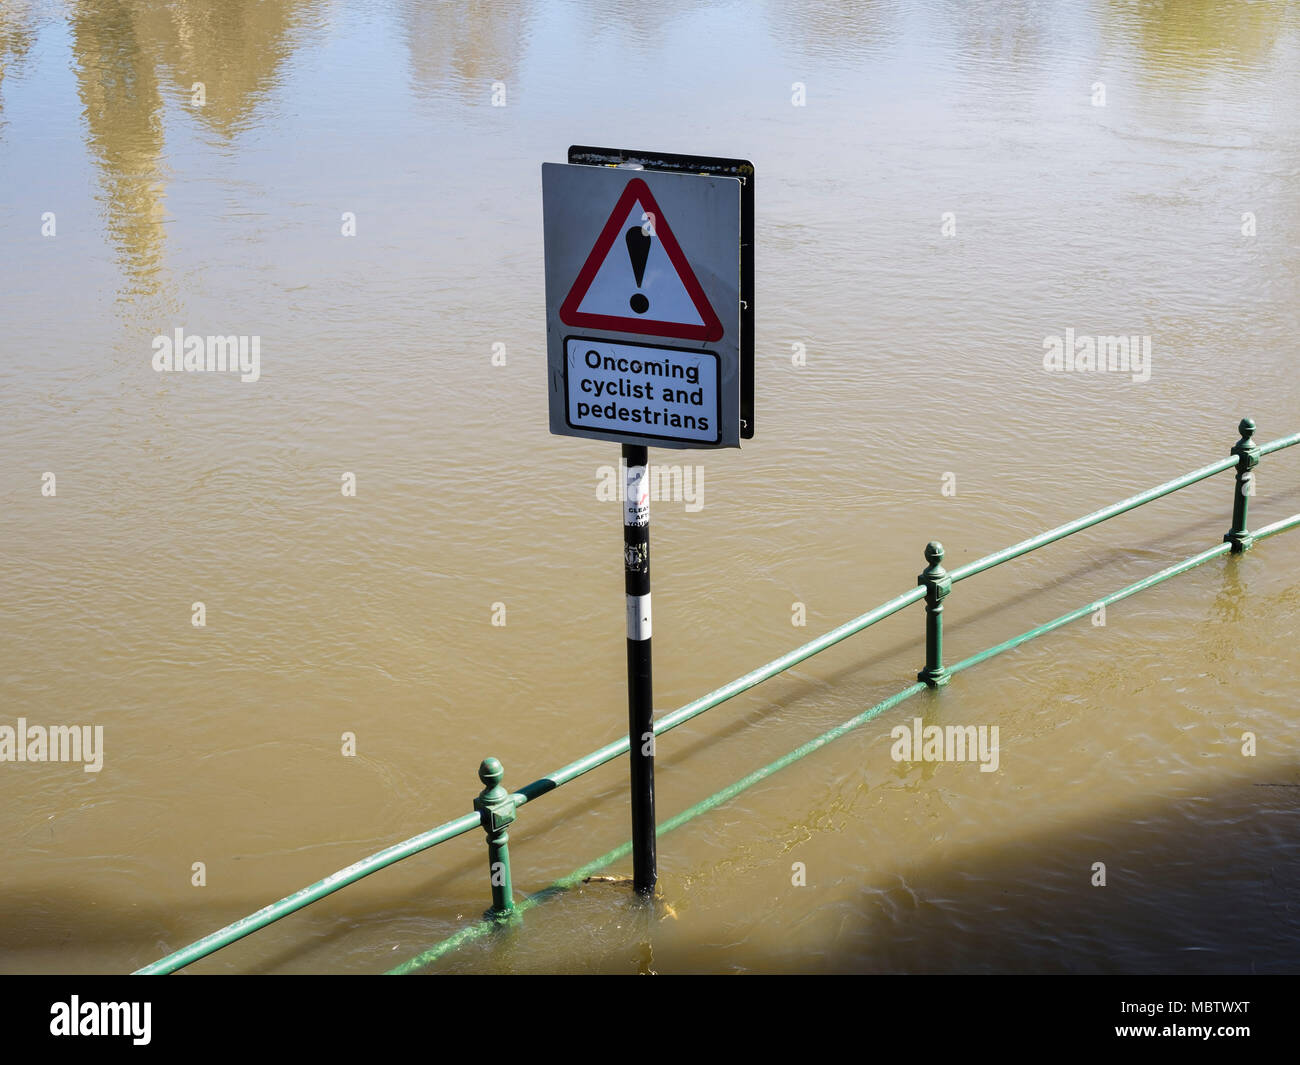 Red triangular road sign in high spring flood water level on track by River Severn. Shrewsbury, Shropshire, West Midlands, England, UK, Britain - Stock Image